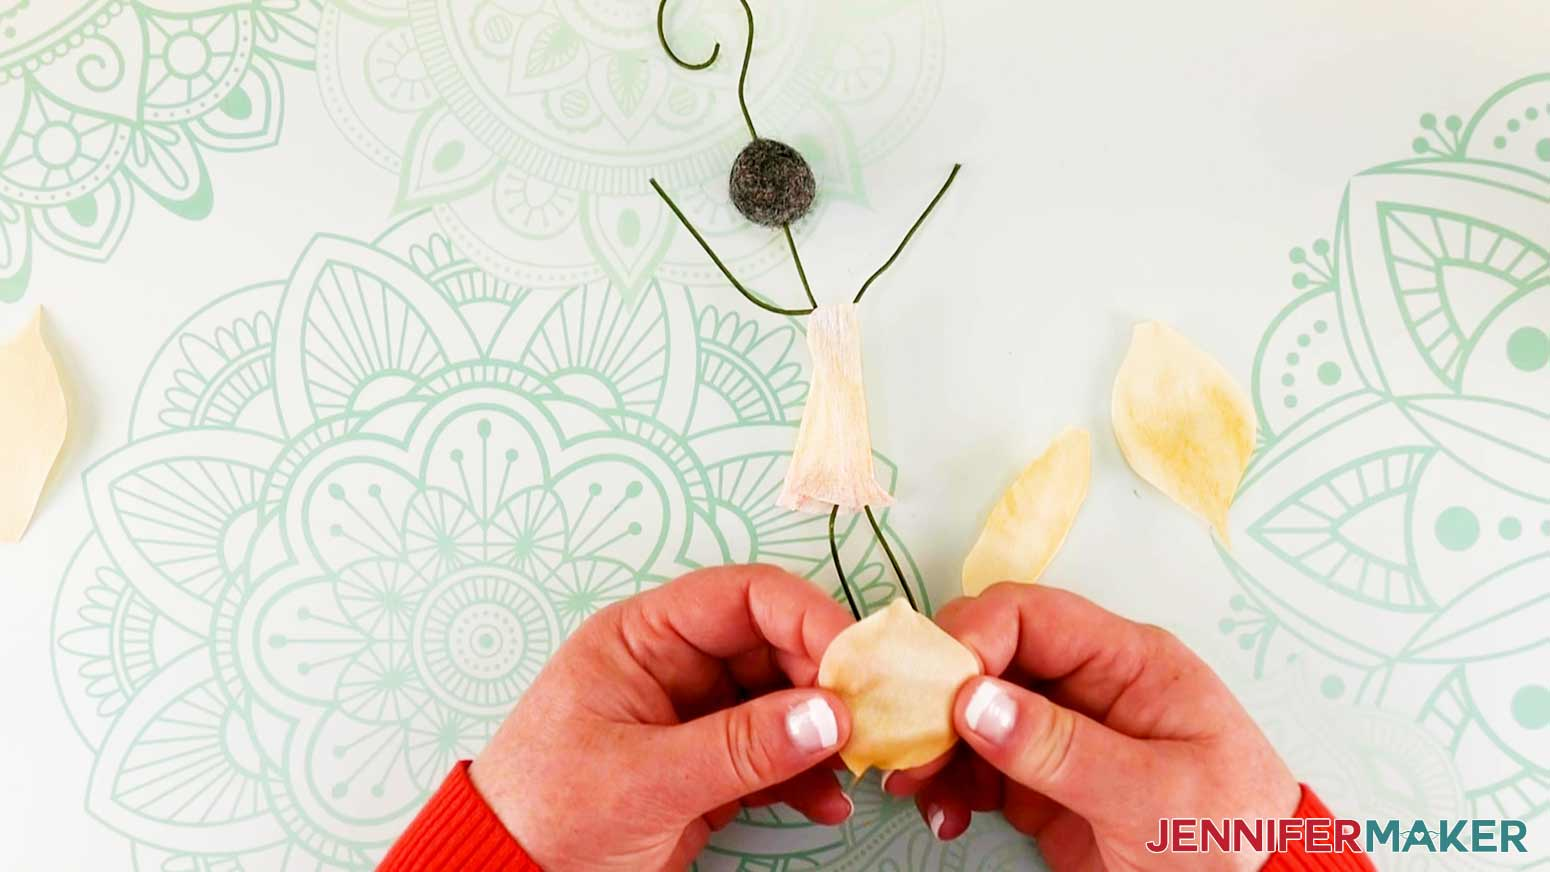 Shaping petals of daffodil flower fairy doll